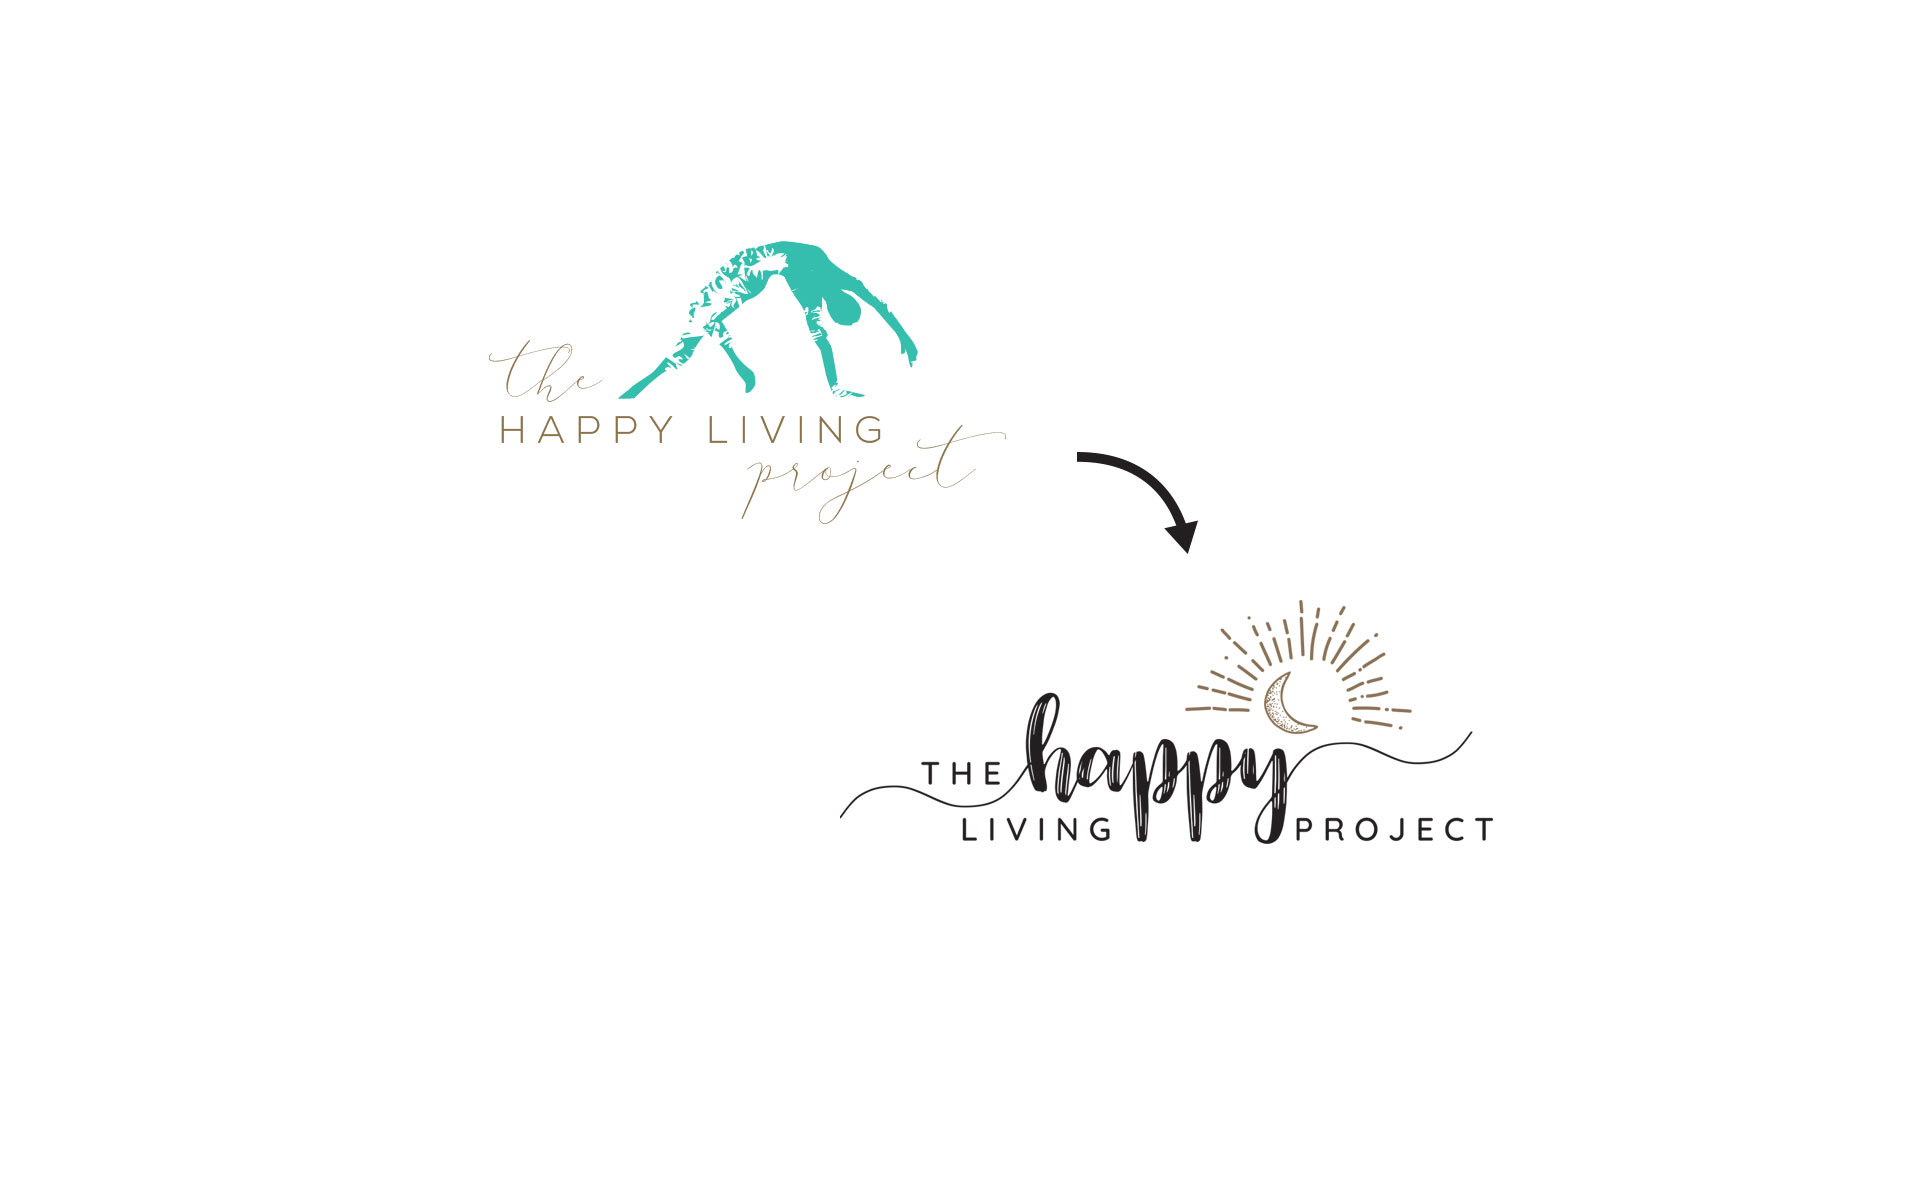 The Happy Living Project branding, marketing & online work designed by Amy at Yellow Sunday